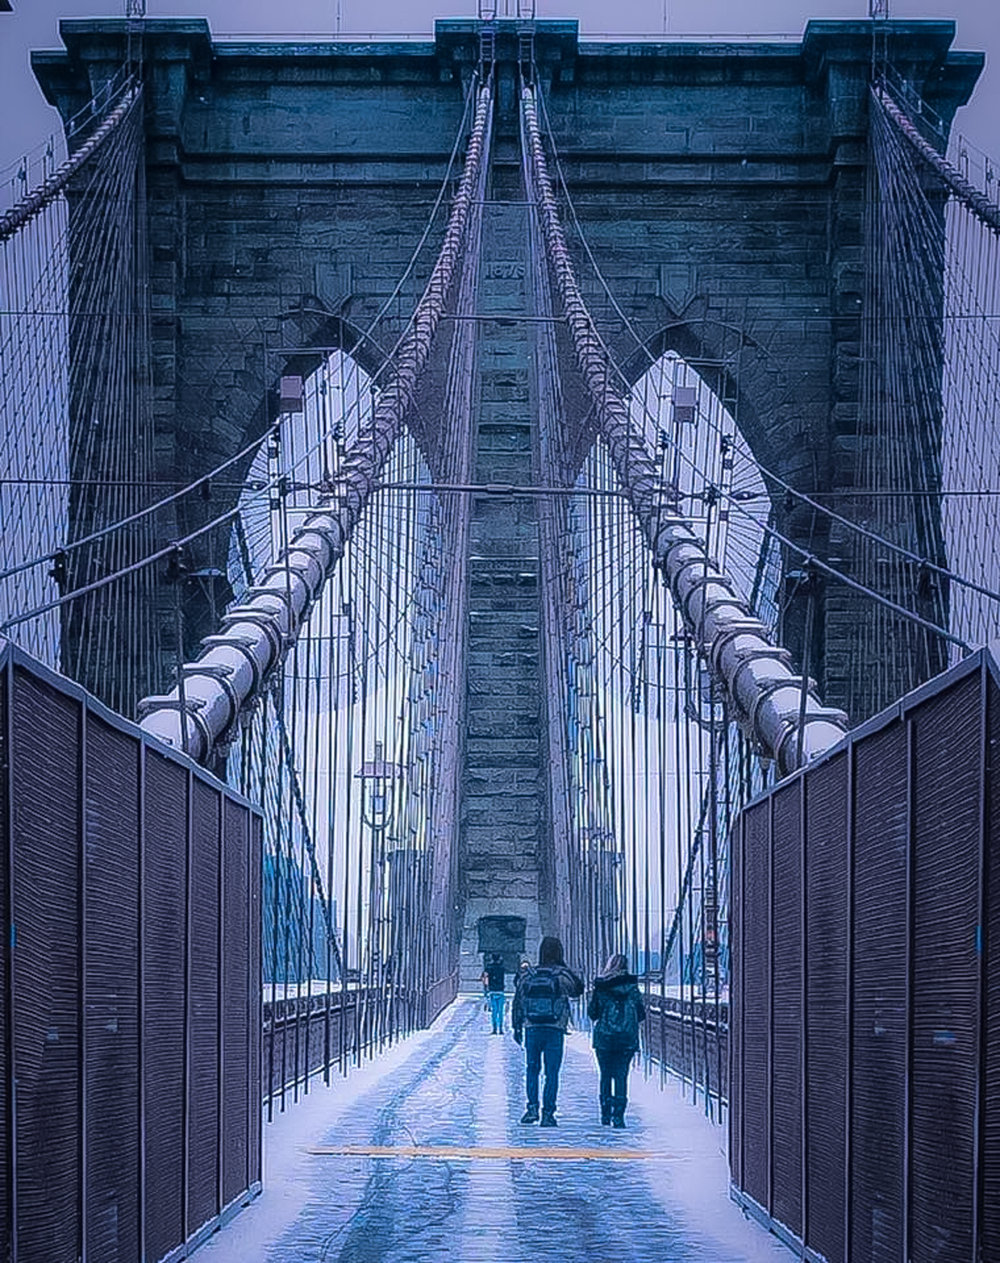 Brooklyn Bridge: 135 years of resilience under the toughest weather conditions. Photo: Lucas Compan